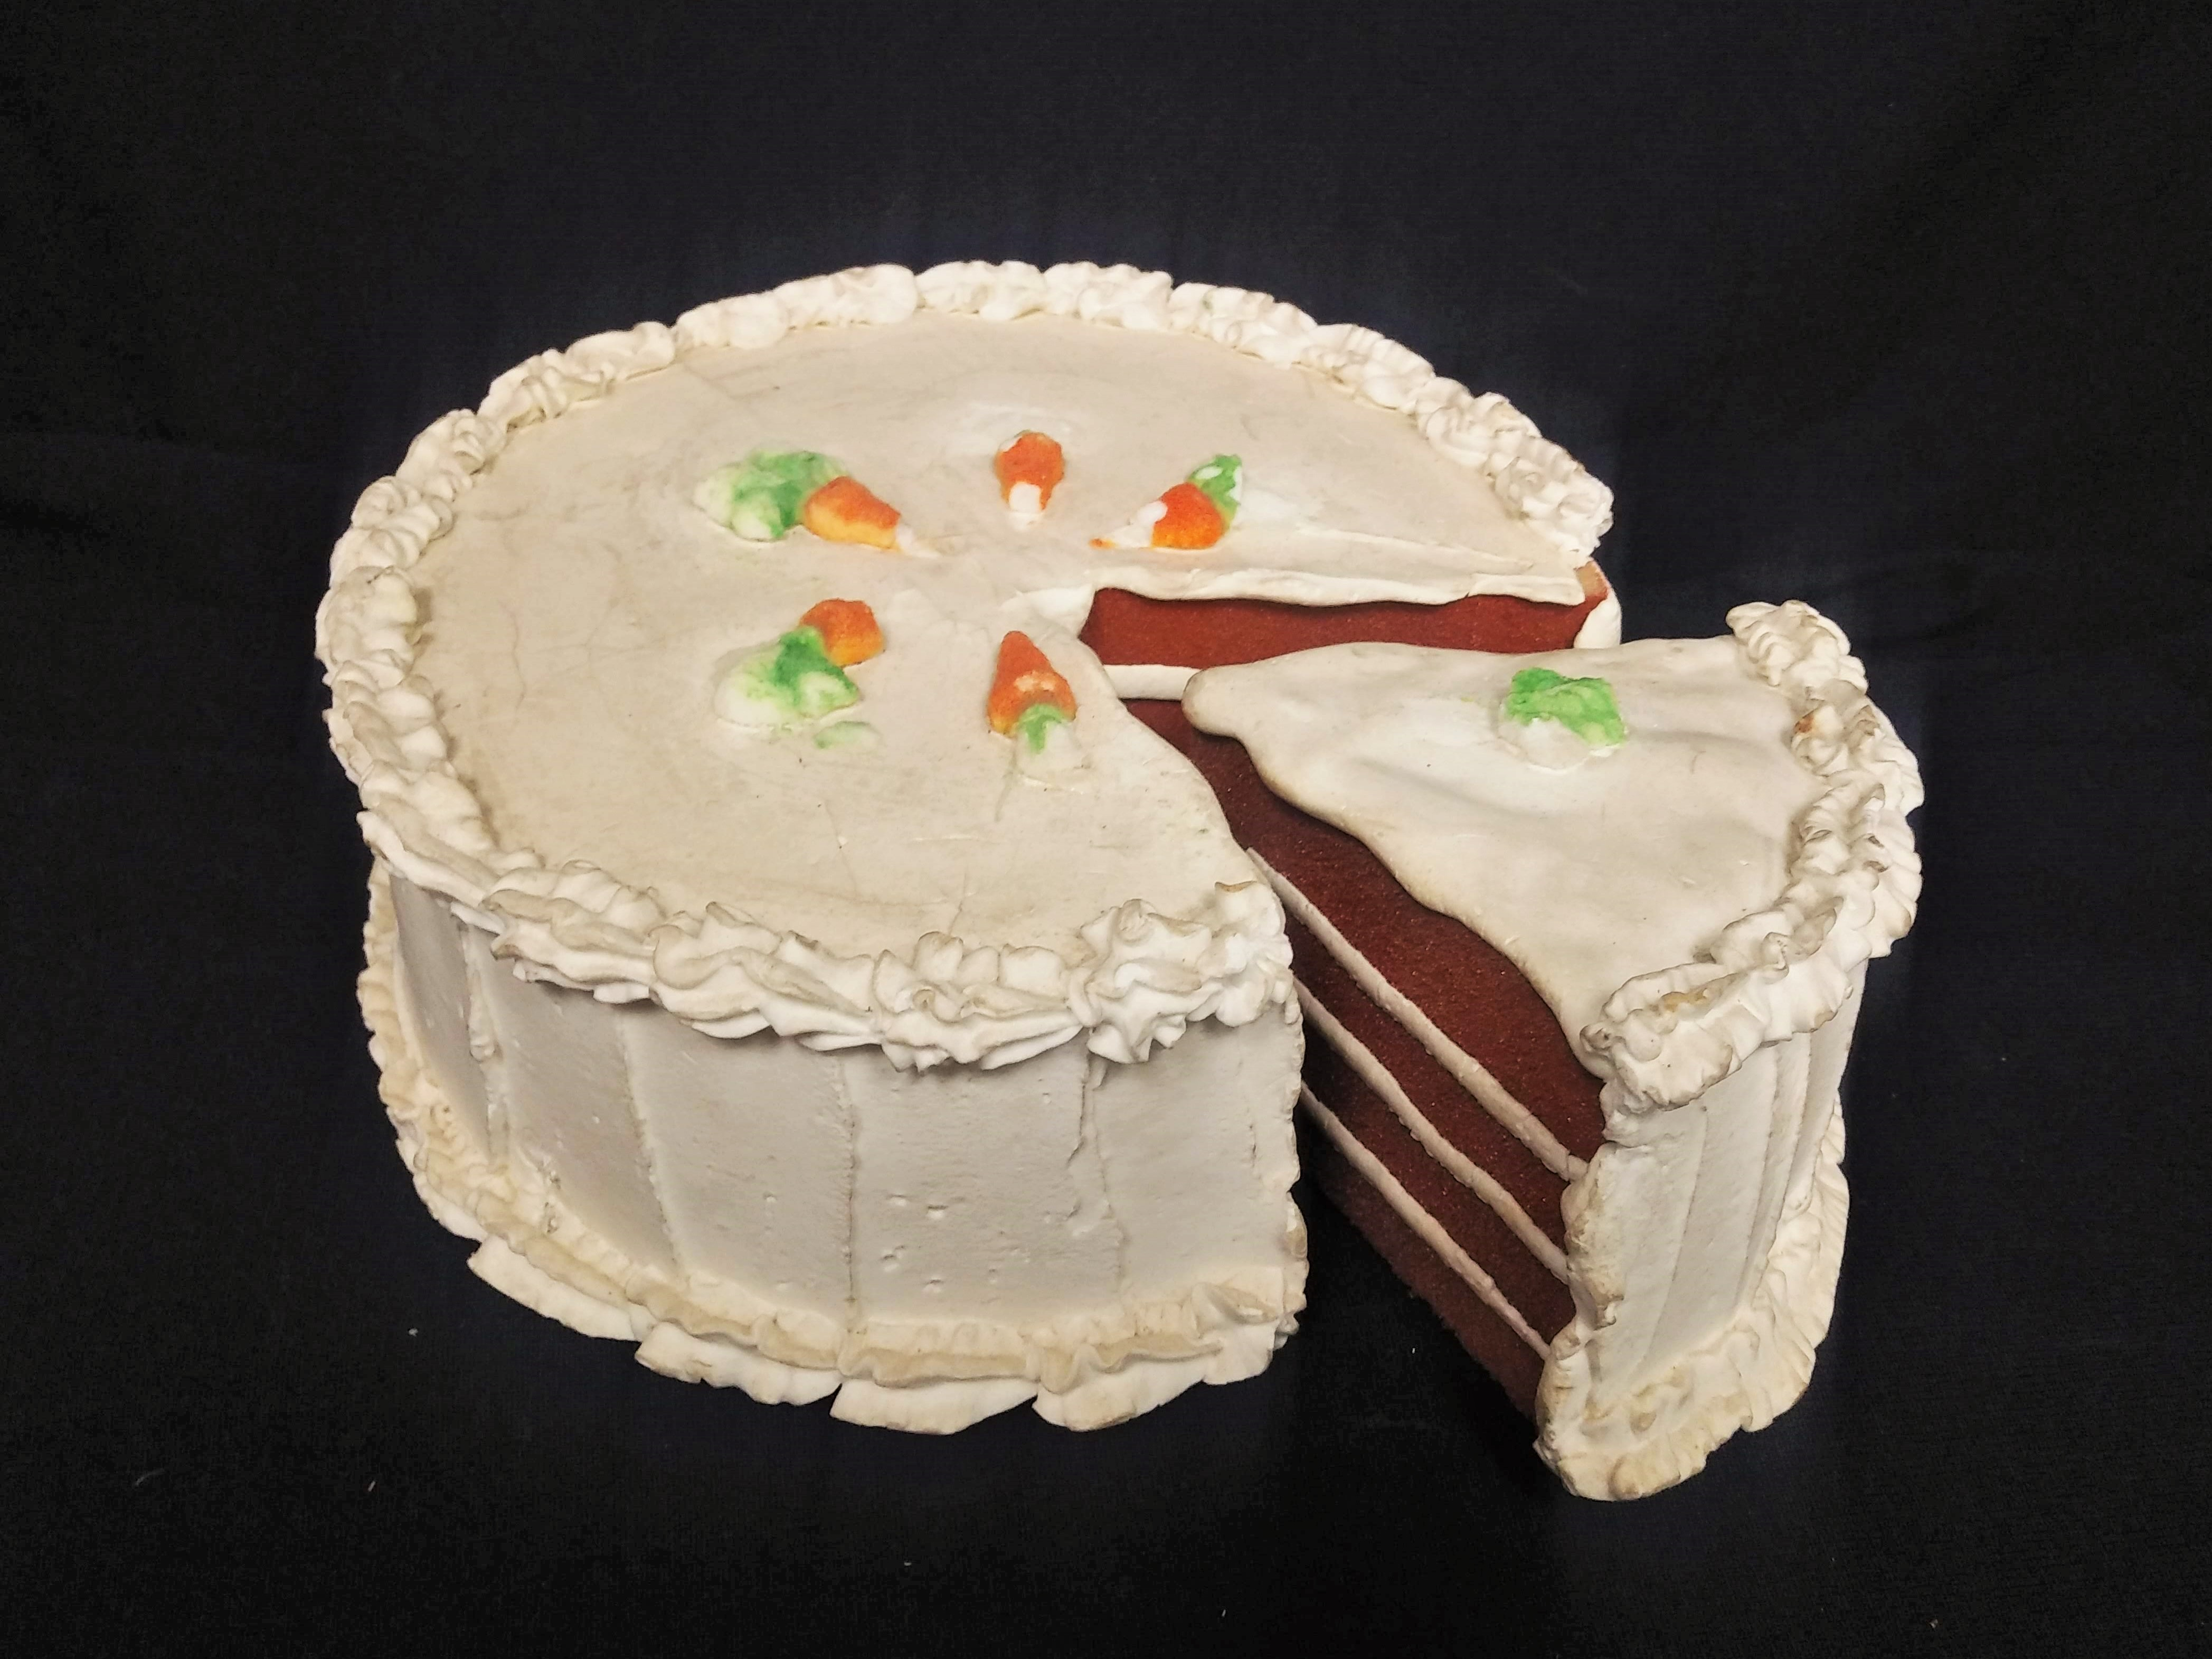 Carrot Cake with a Slice